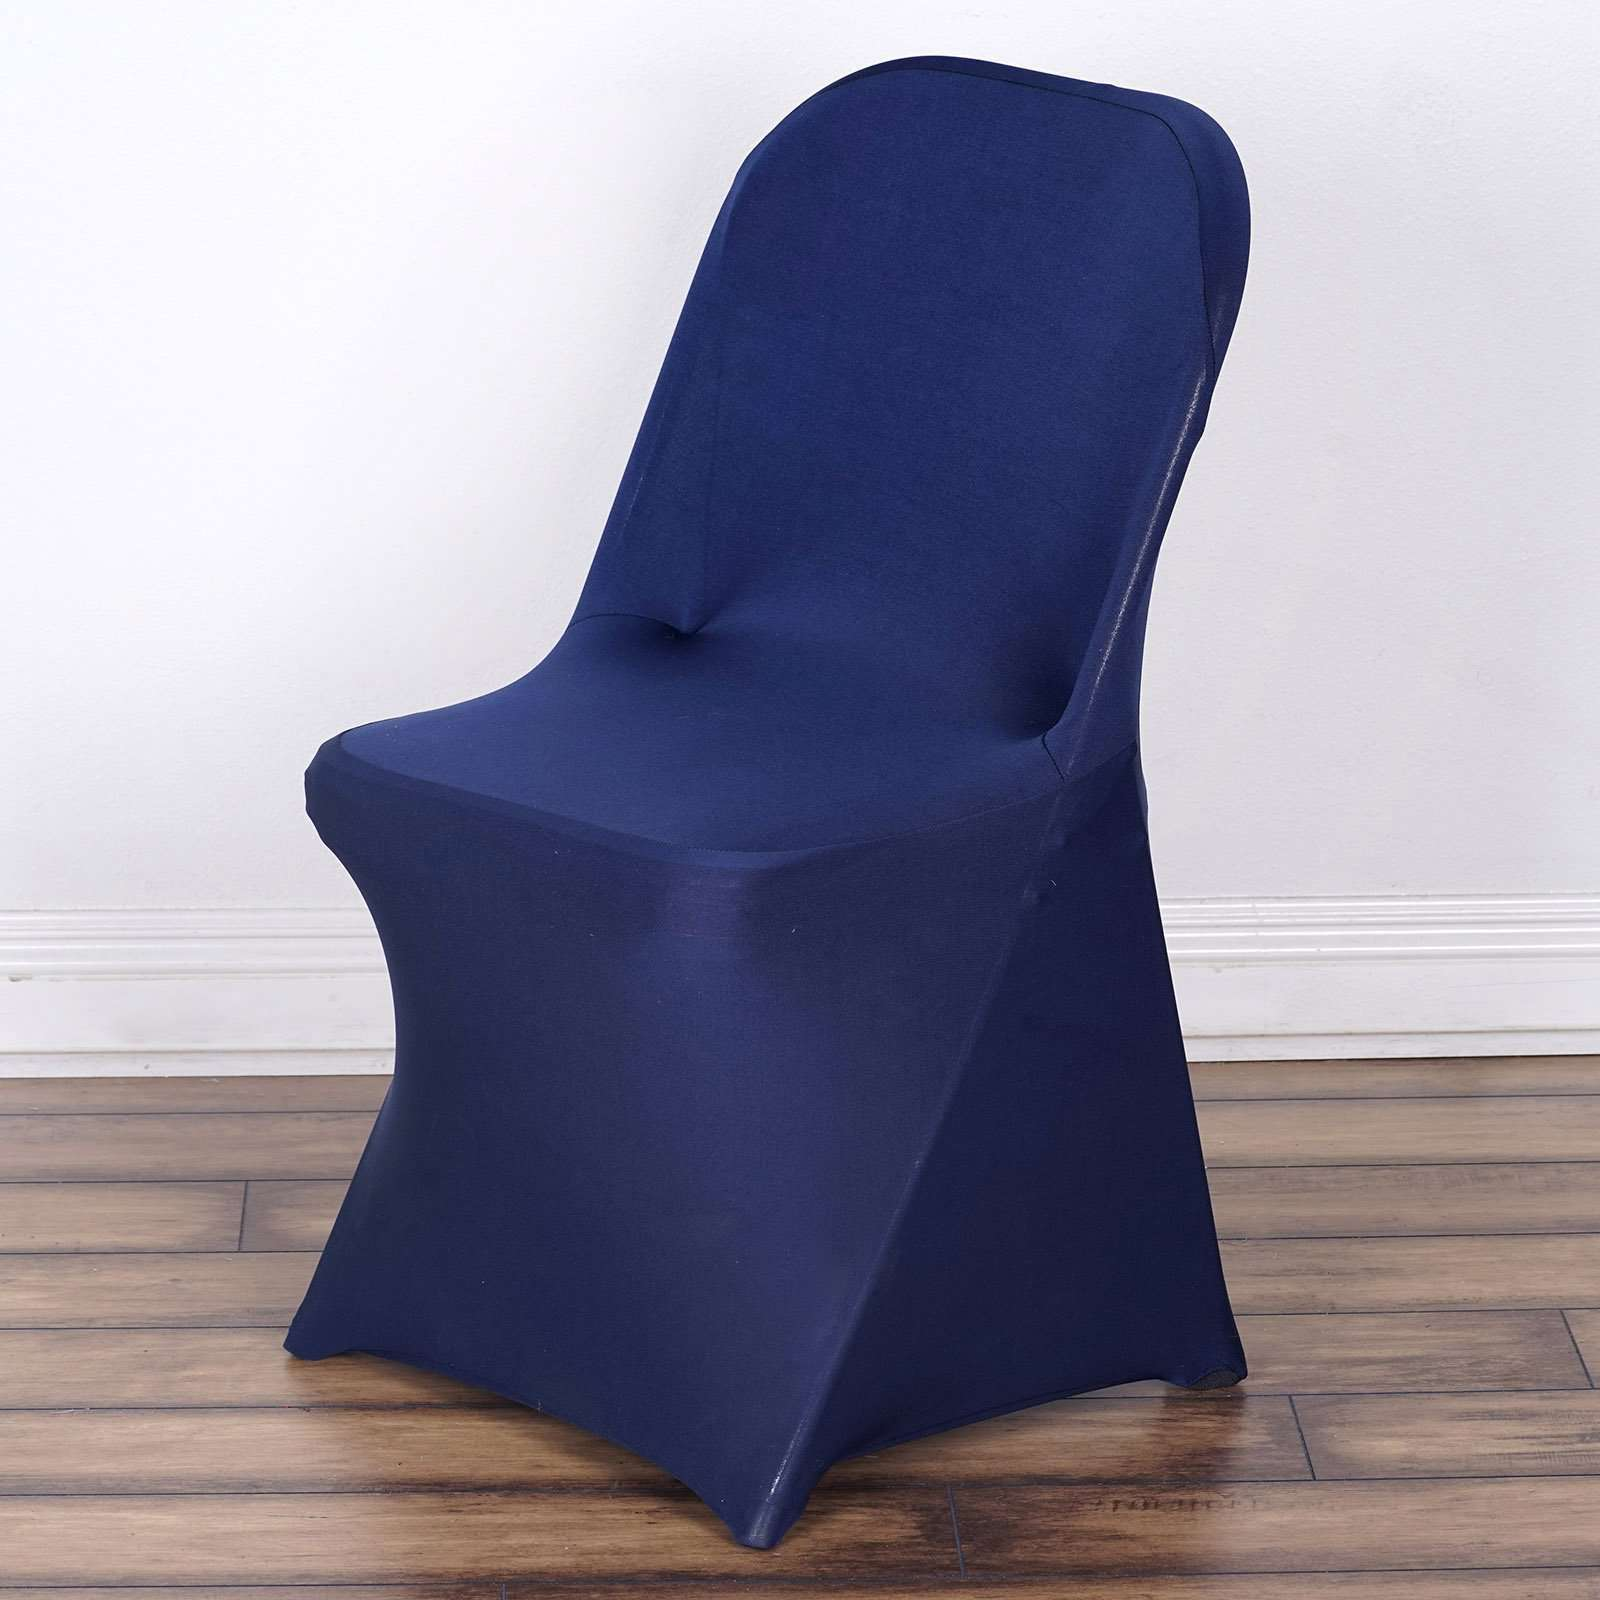 will folding chair covers fit banquet chairs reclining outdoor lounge wholesale navy spandex stretch cover wedding party event chaircoverfactory